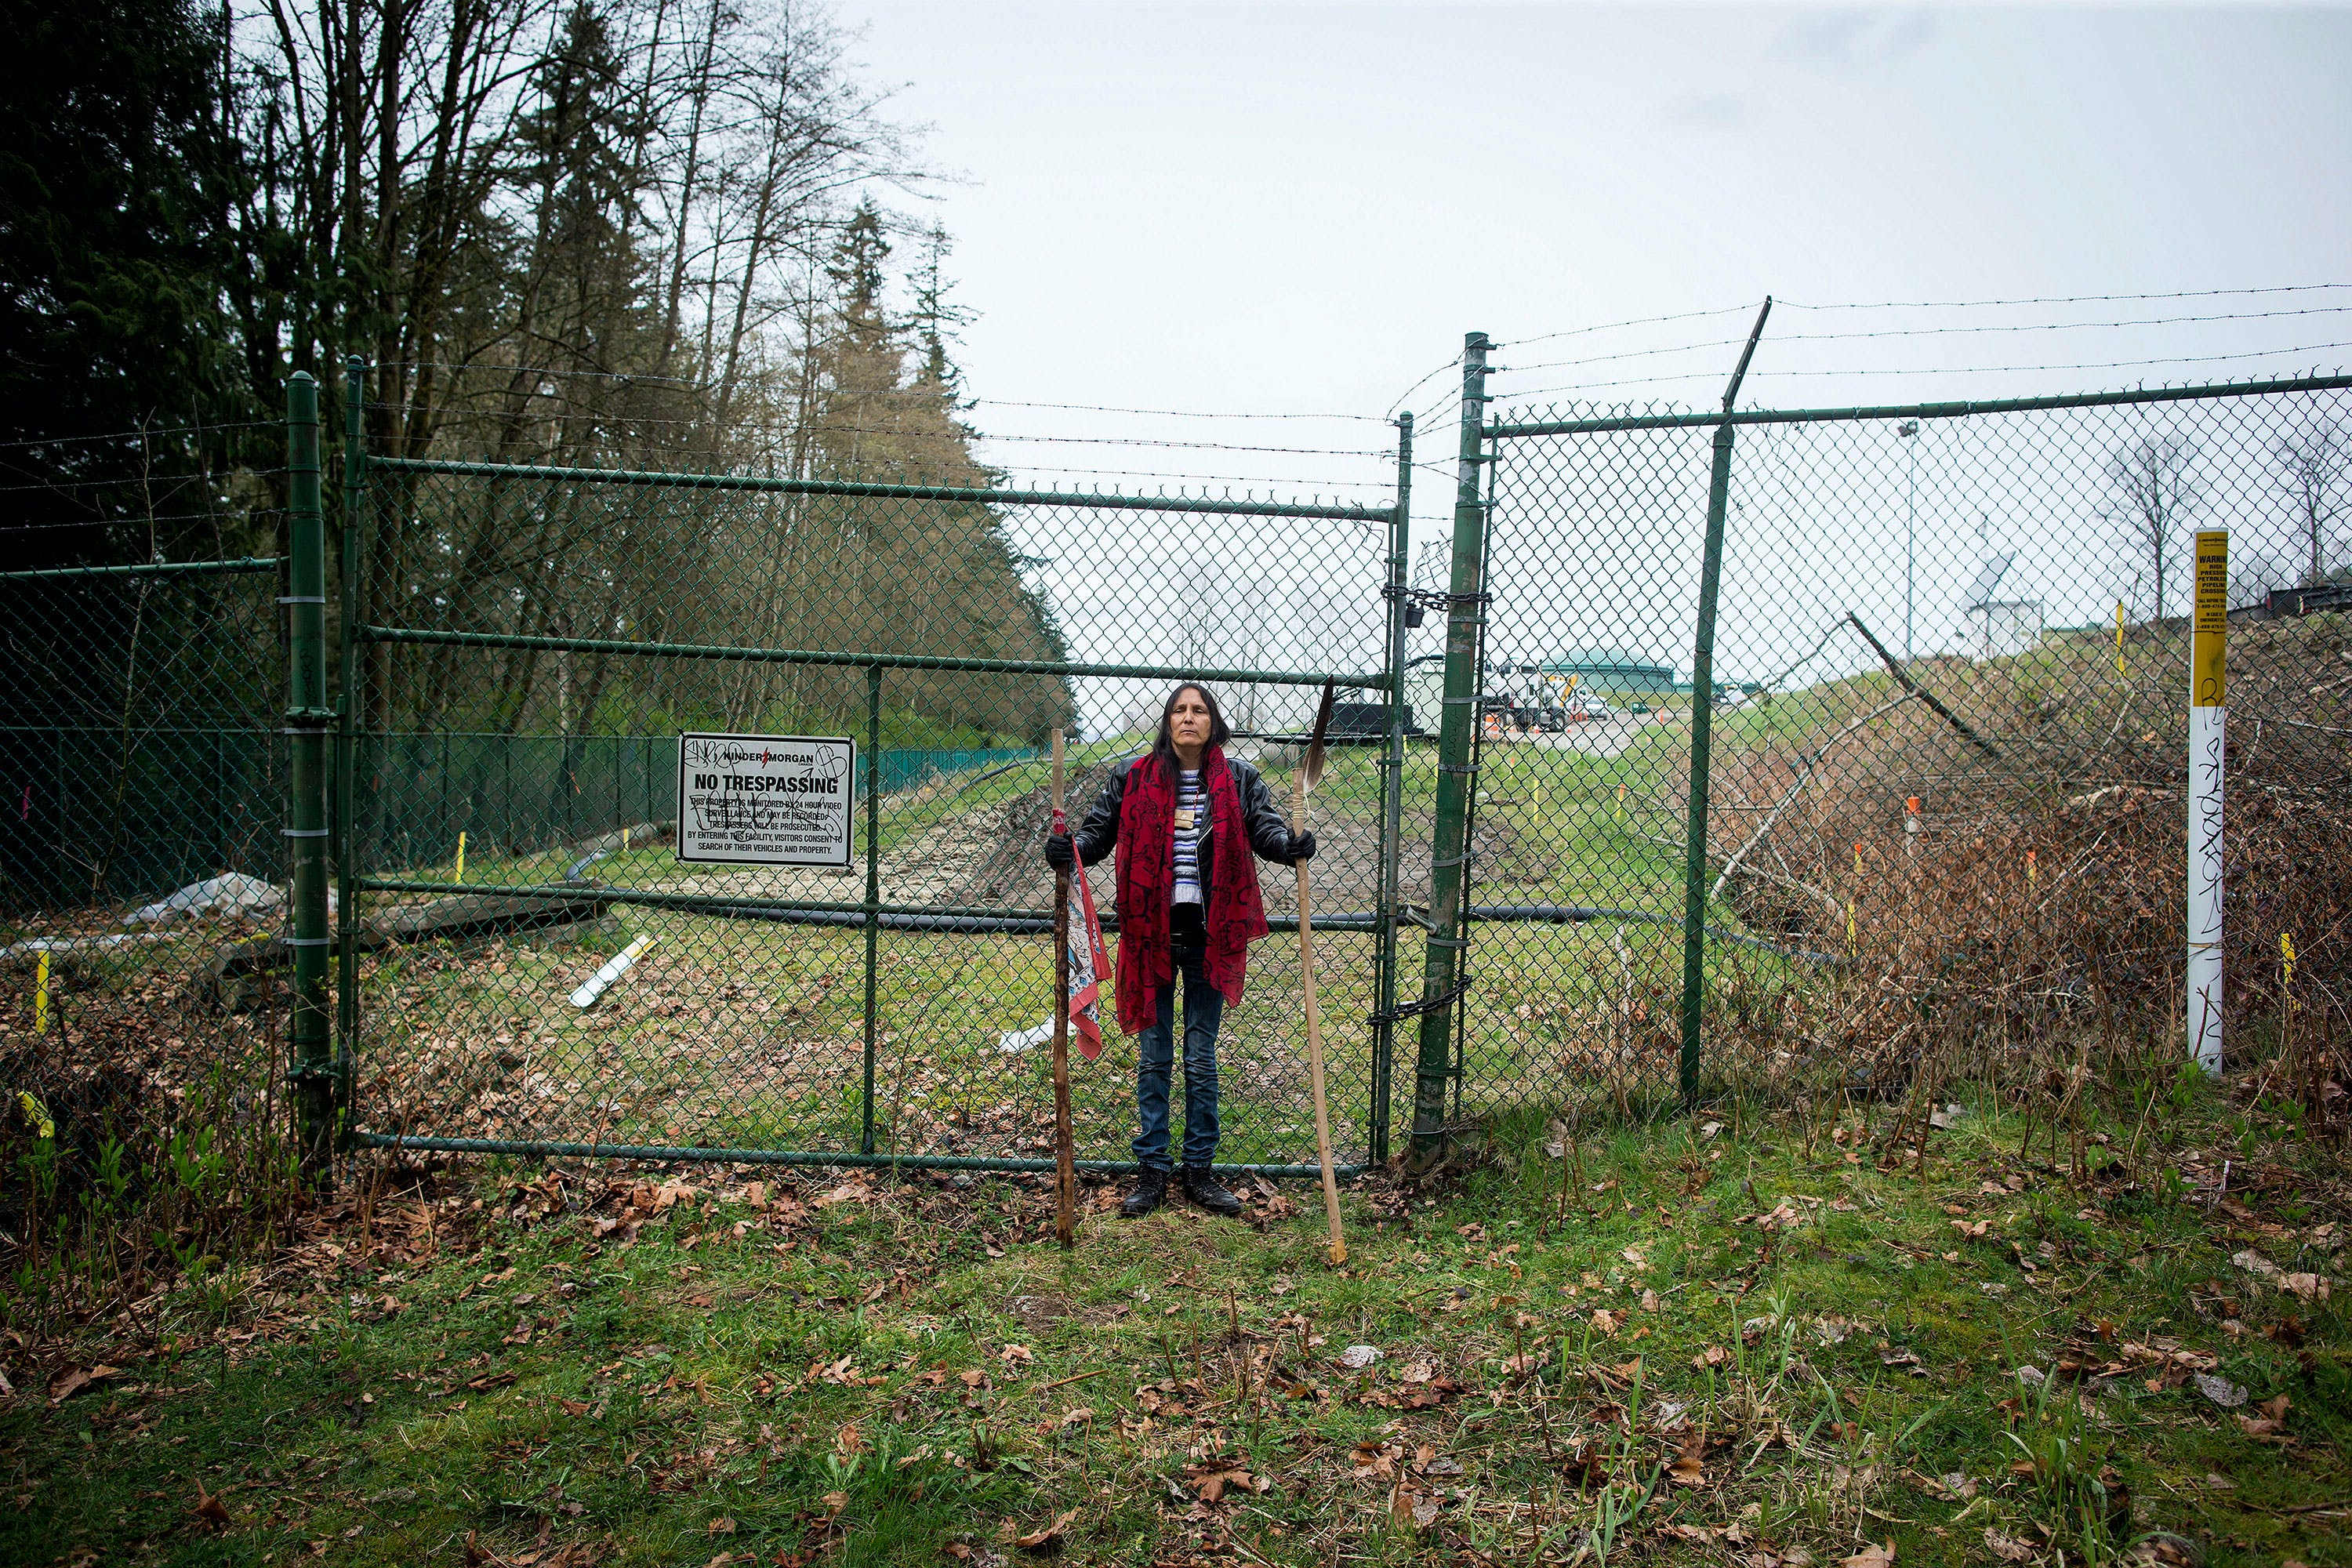 Kat Roivas, who is opposed to the expansion of the Kinder Morgan Trans Mountain pipeline, stands at an access gate at the company's property near an area where work is taking place, in Burnaby, B.C., on Monday April 9, 2018. The Houston, Texas, based company announced Sunday it has suspended all non-essential activities and related spending on the pipeline expansion that would carry Alberta bitumen to an export terminal near Vancouver. (Darryl Dyck/The Canadian Press via AP)